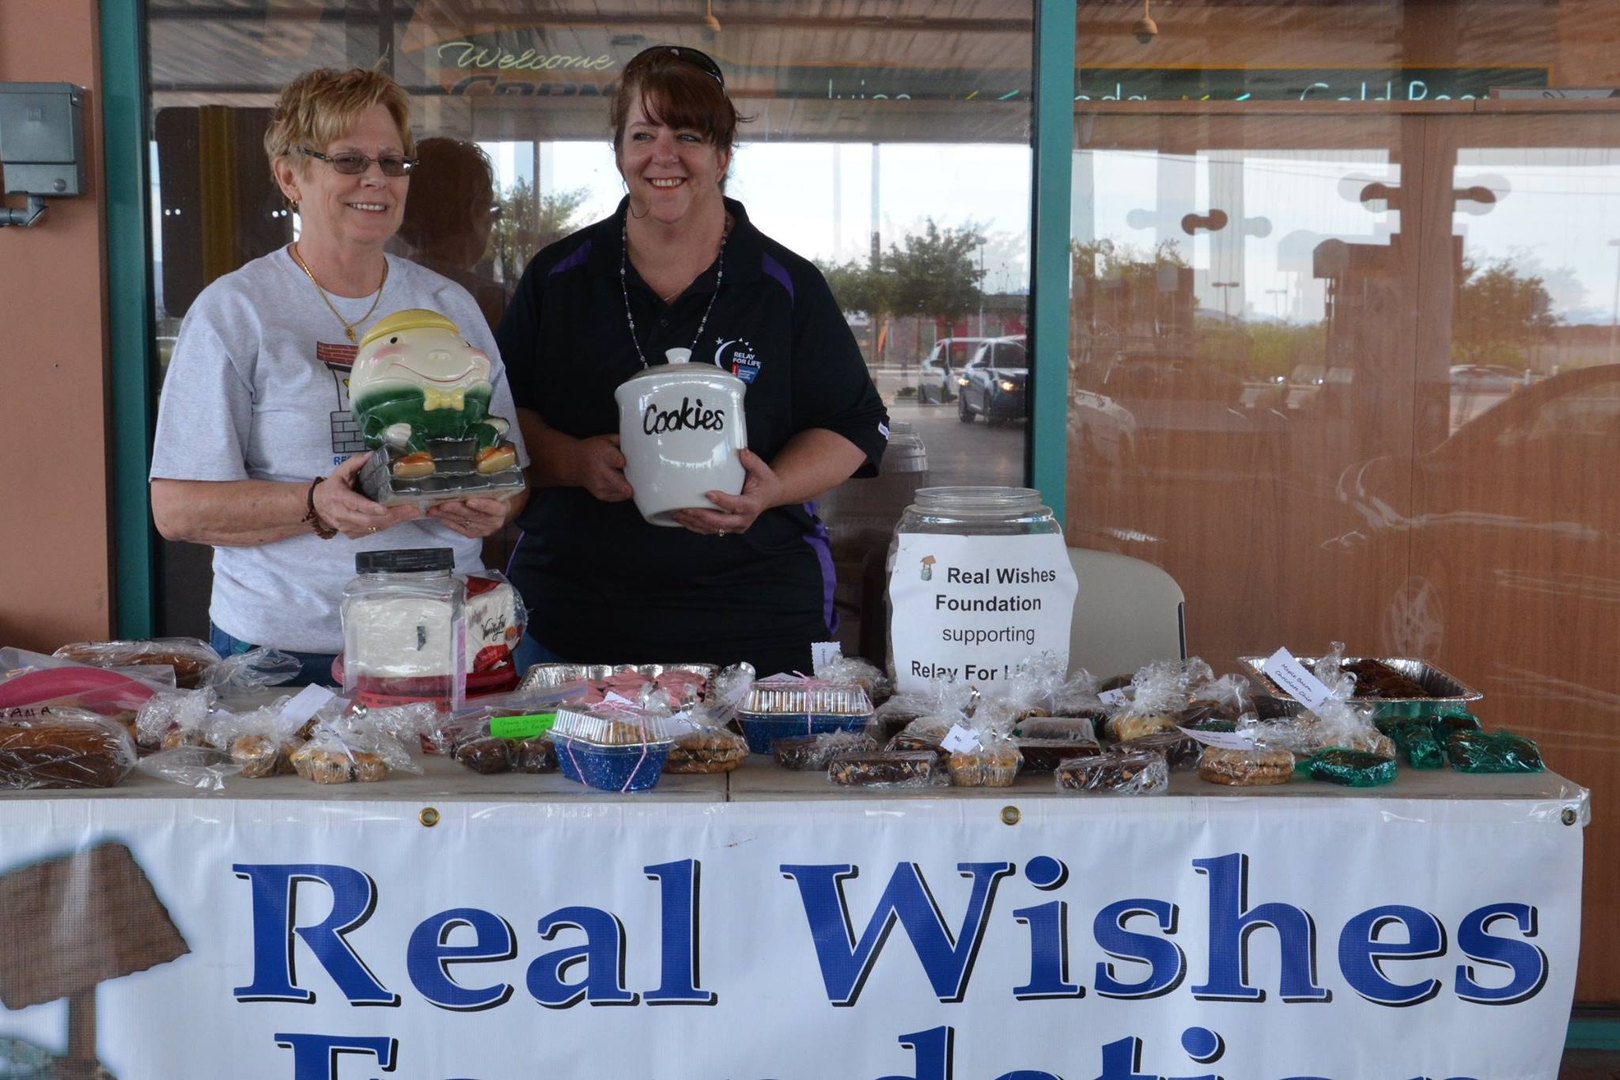 Real Wishes Foundation